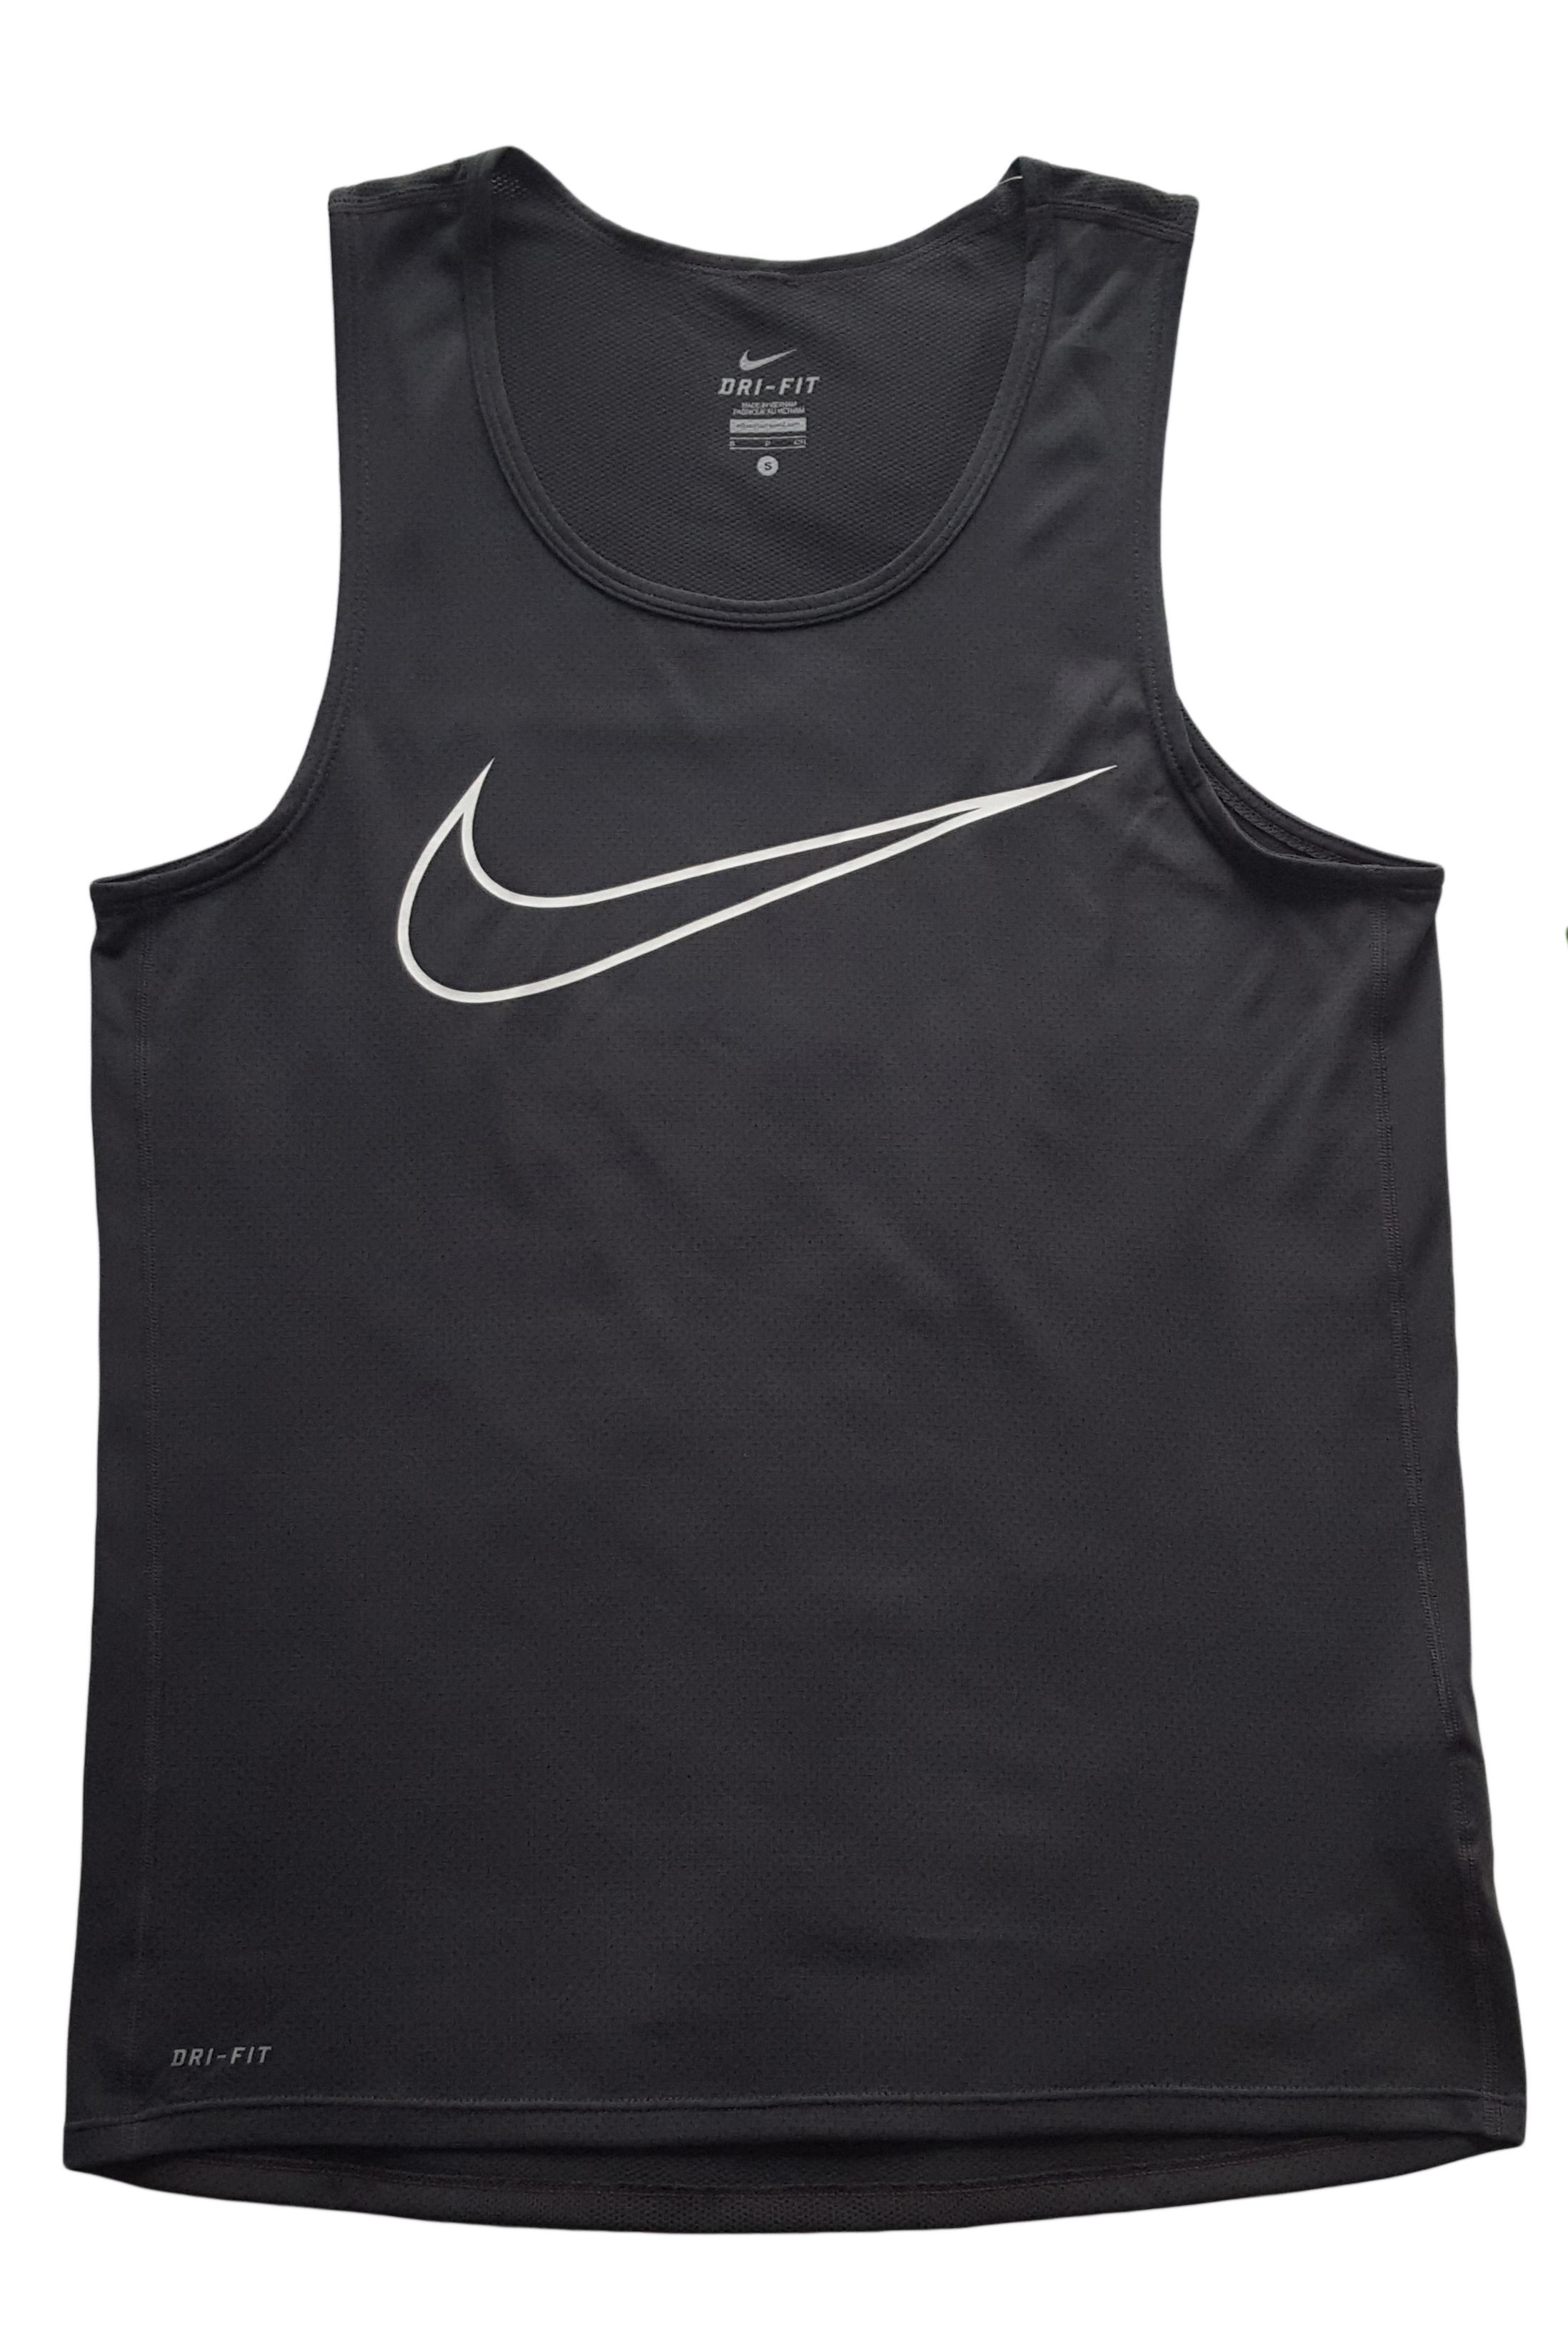 40cdd2beb92b9 Home   Brands   Nike   Nike Men s Graphic Contour Dri-FIT Mesh Running Tank- Top Size Small